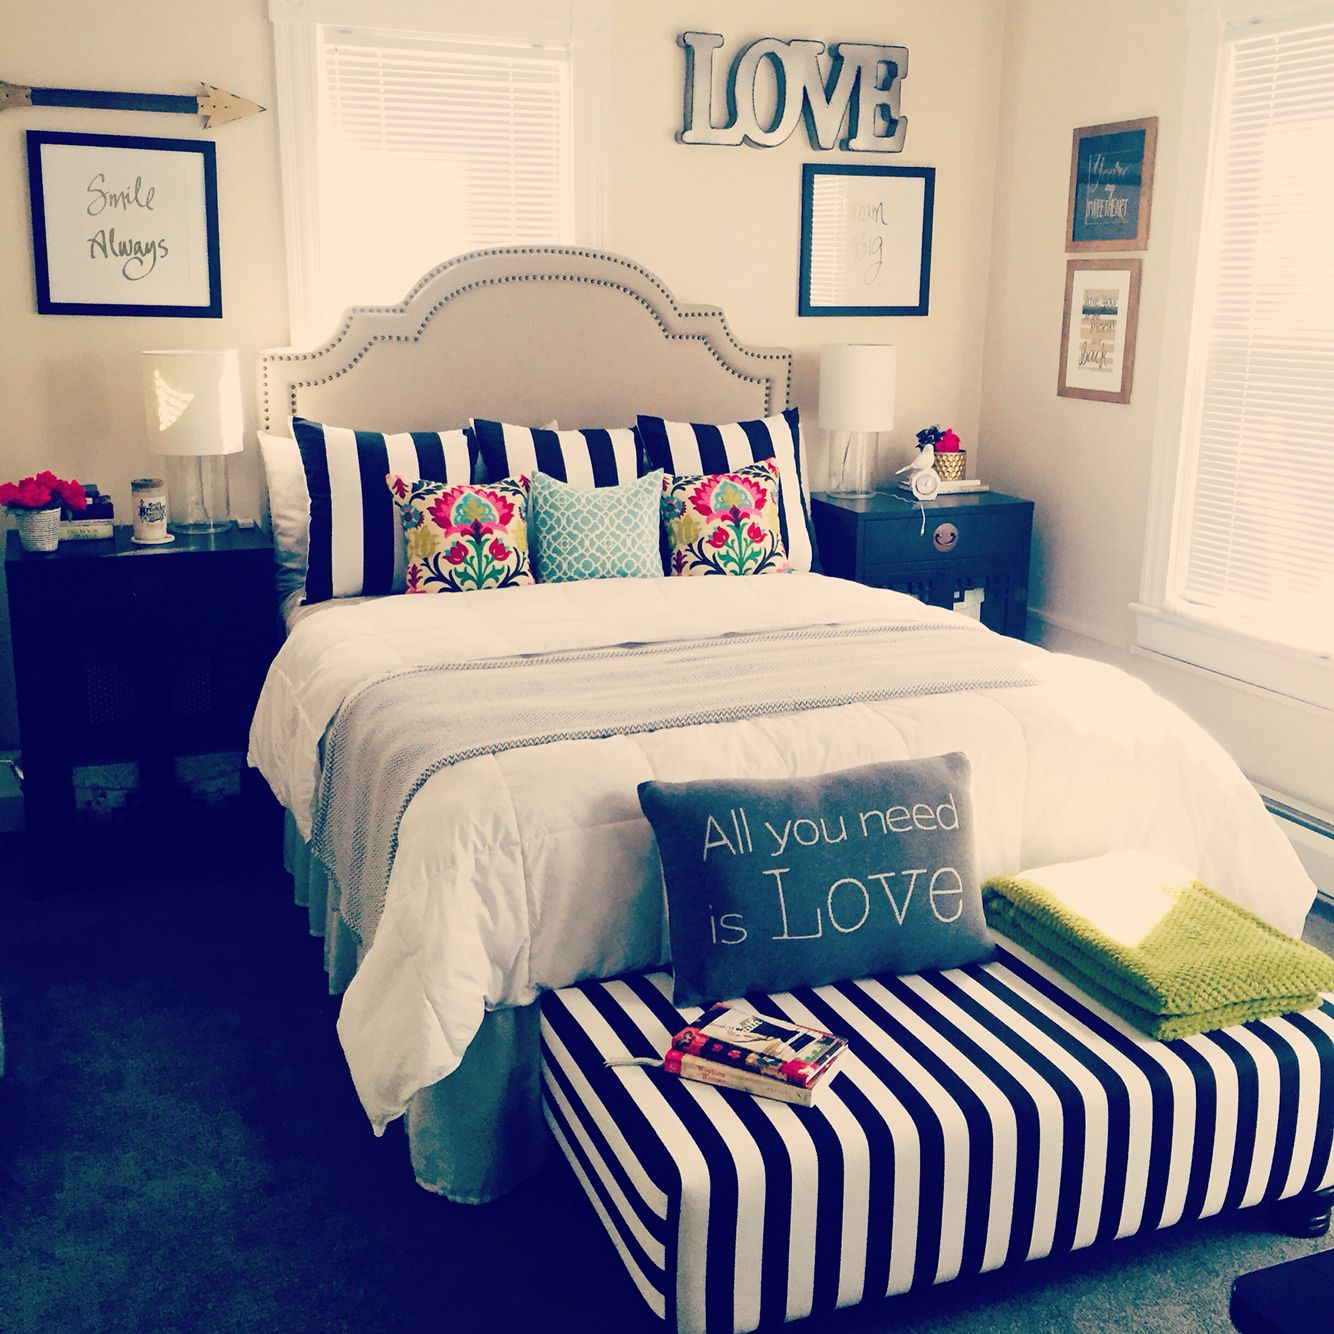 Cozy Master Bedroom: Cozy Master Bedroom With Little Pops Of Color!